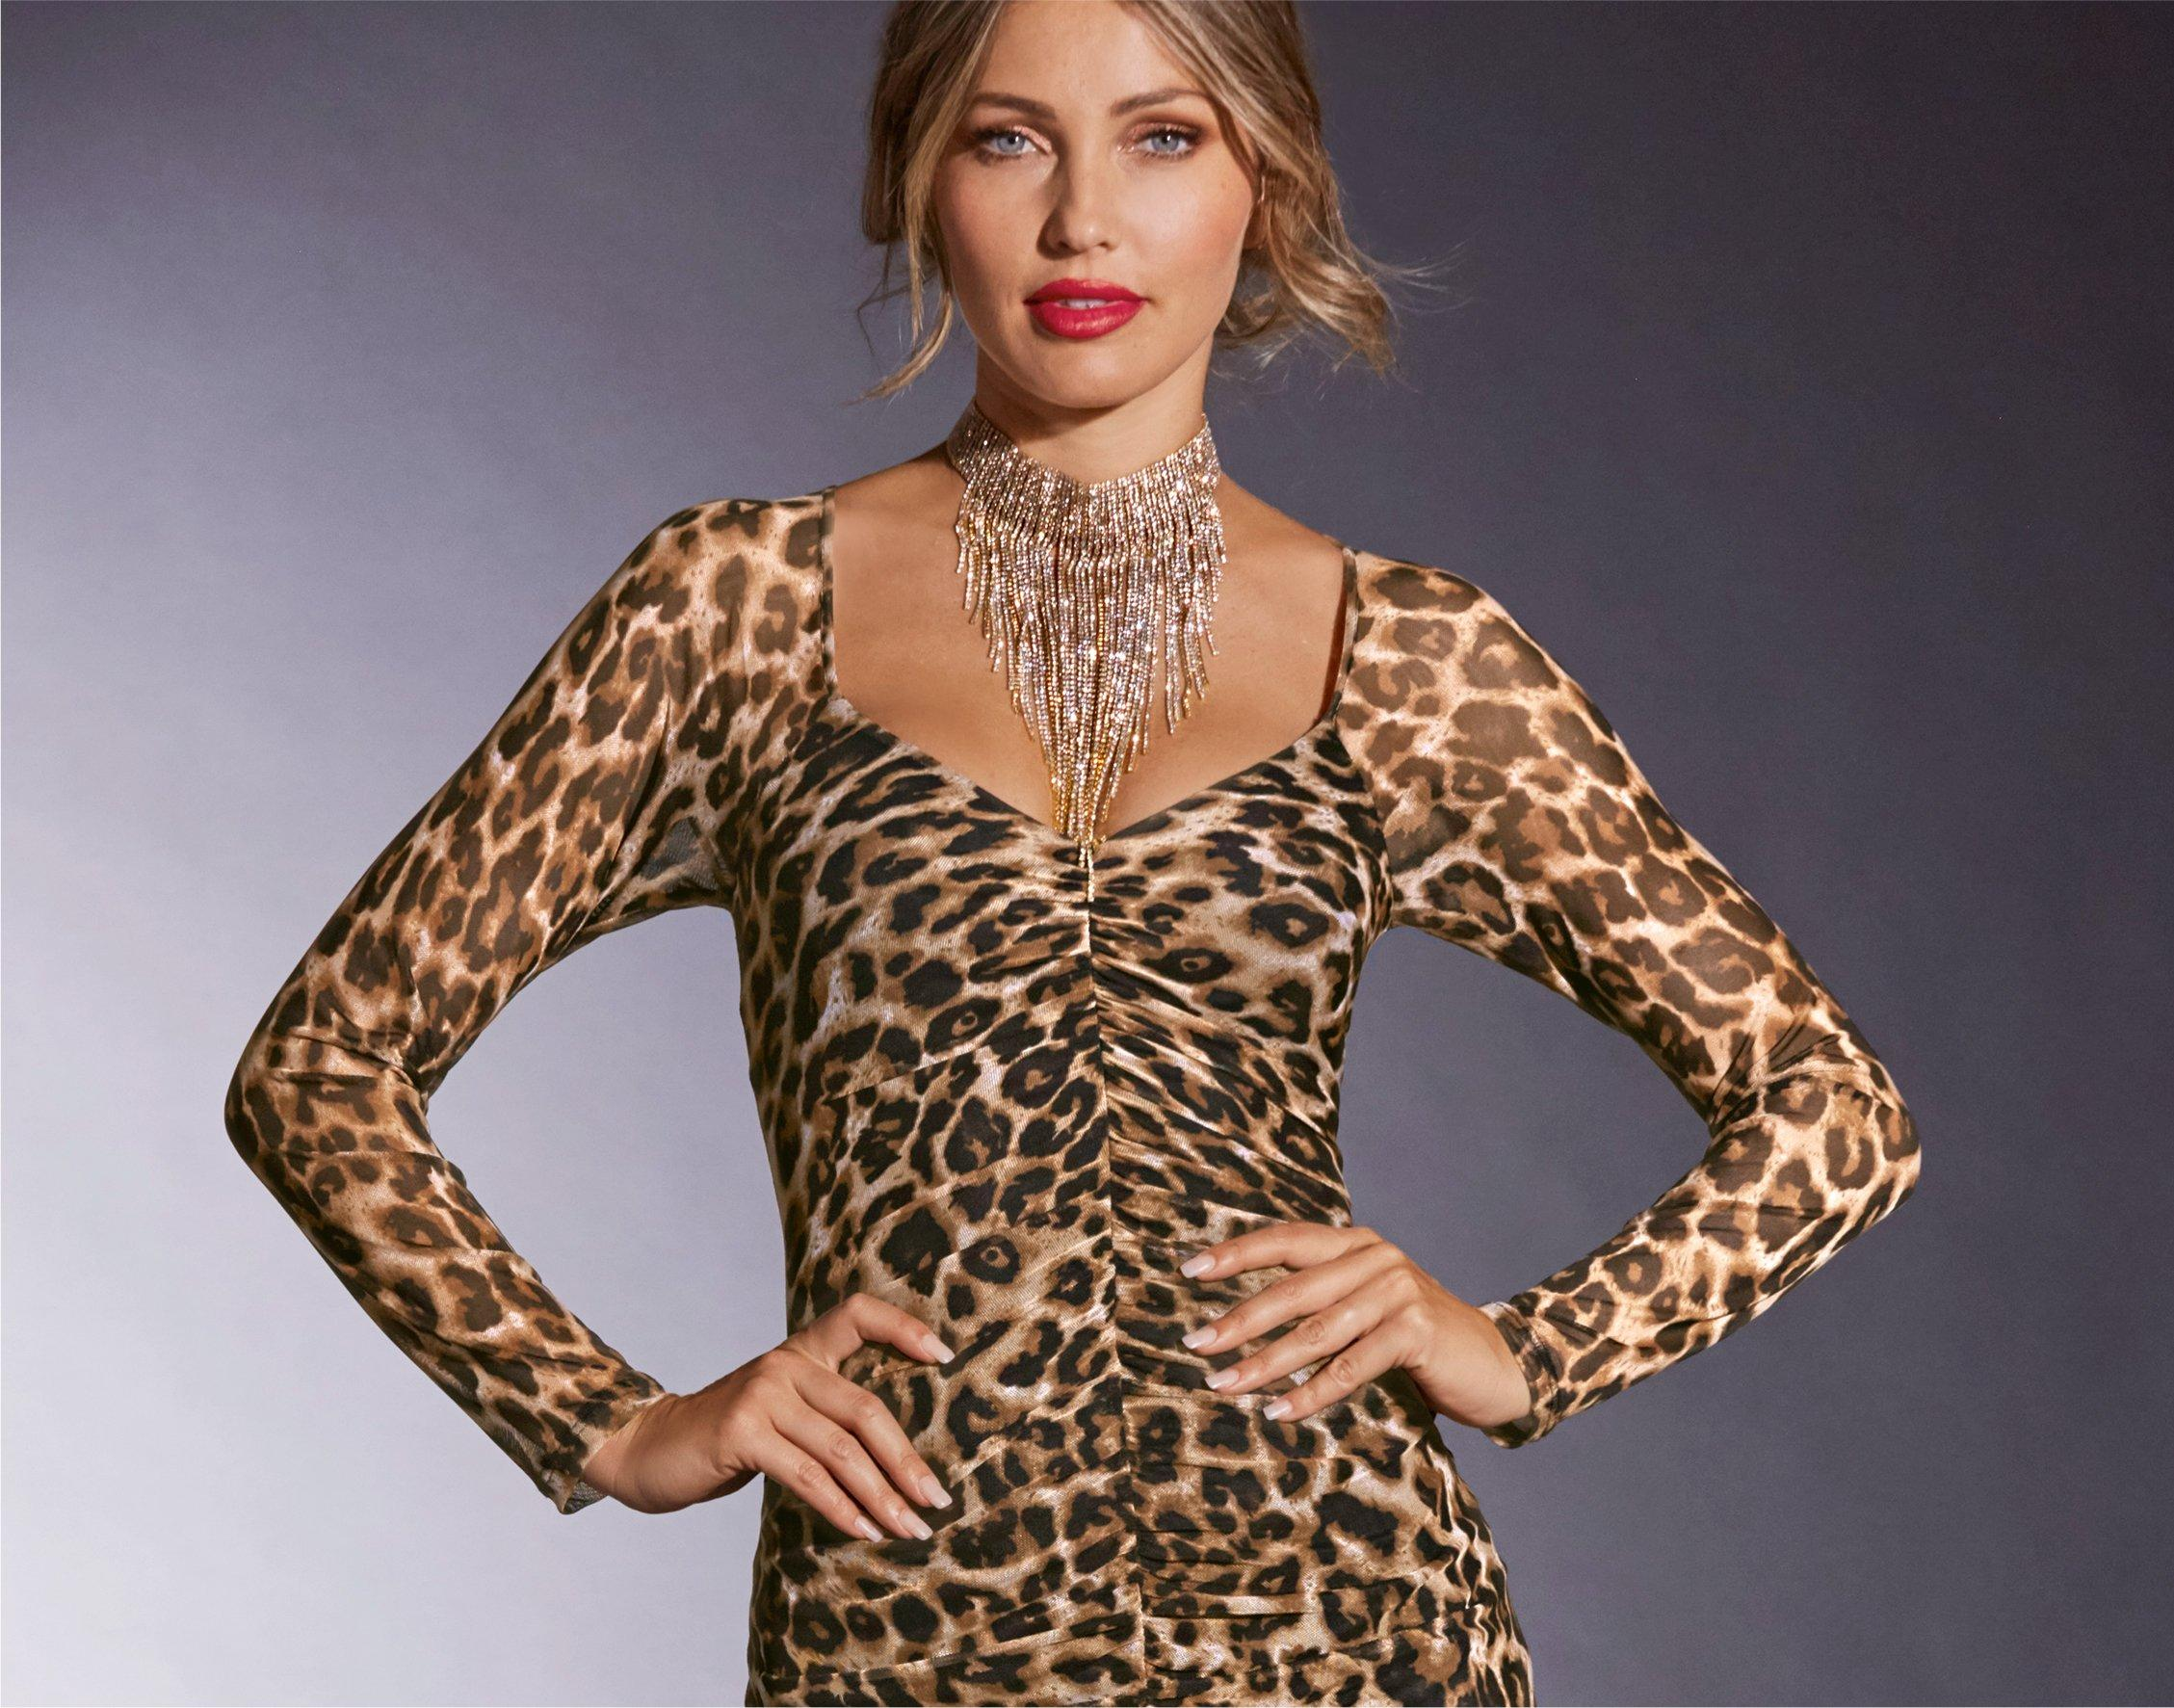 model wearing cheetah print dress with large fringe statement necklace.